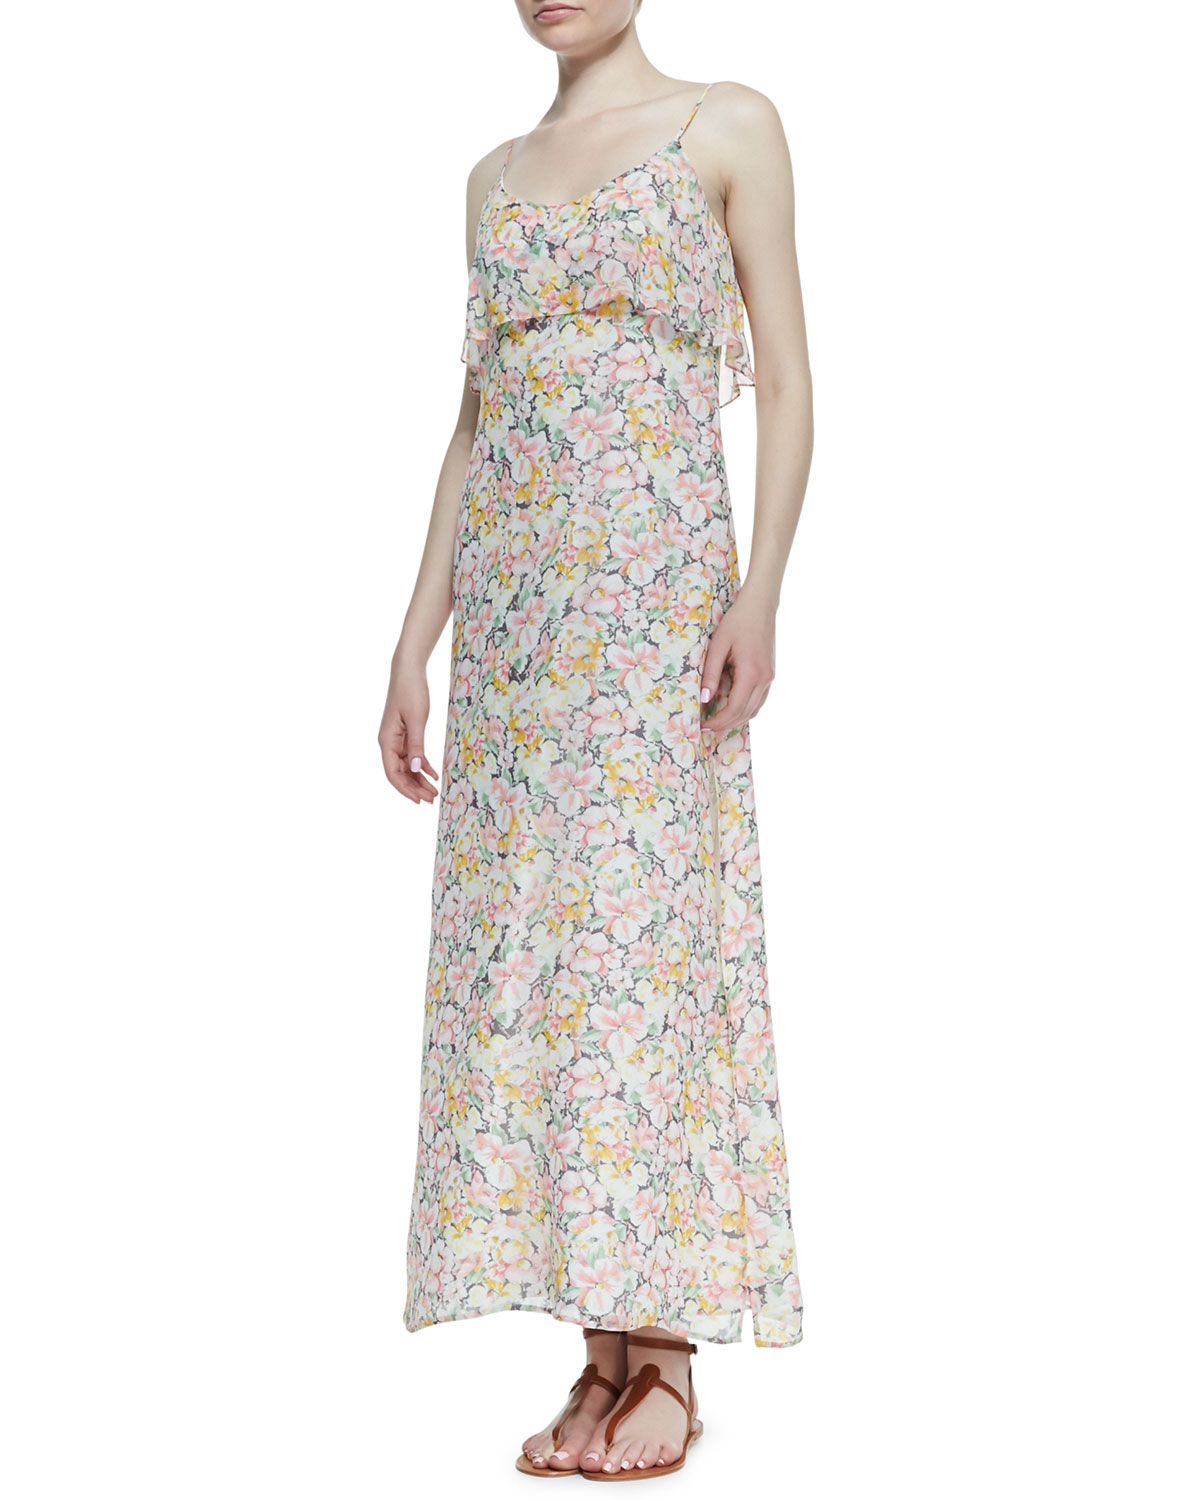 Womens Hydeia Floral Print Tiered Maxi Dress   Joie   Picnic pink (X SMALL)